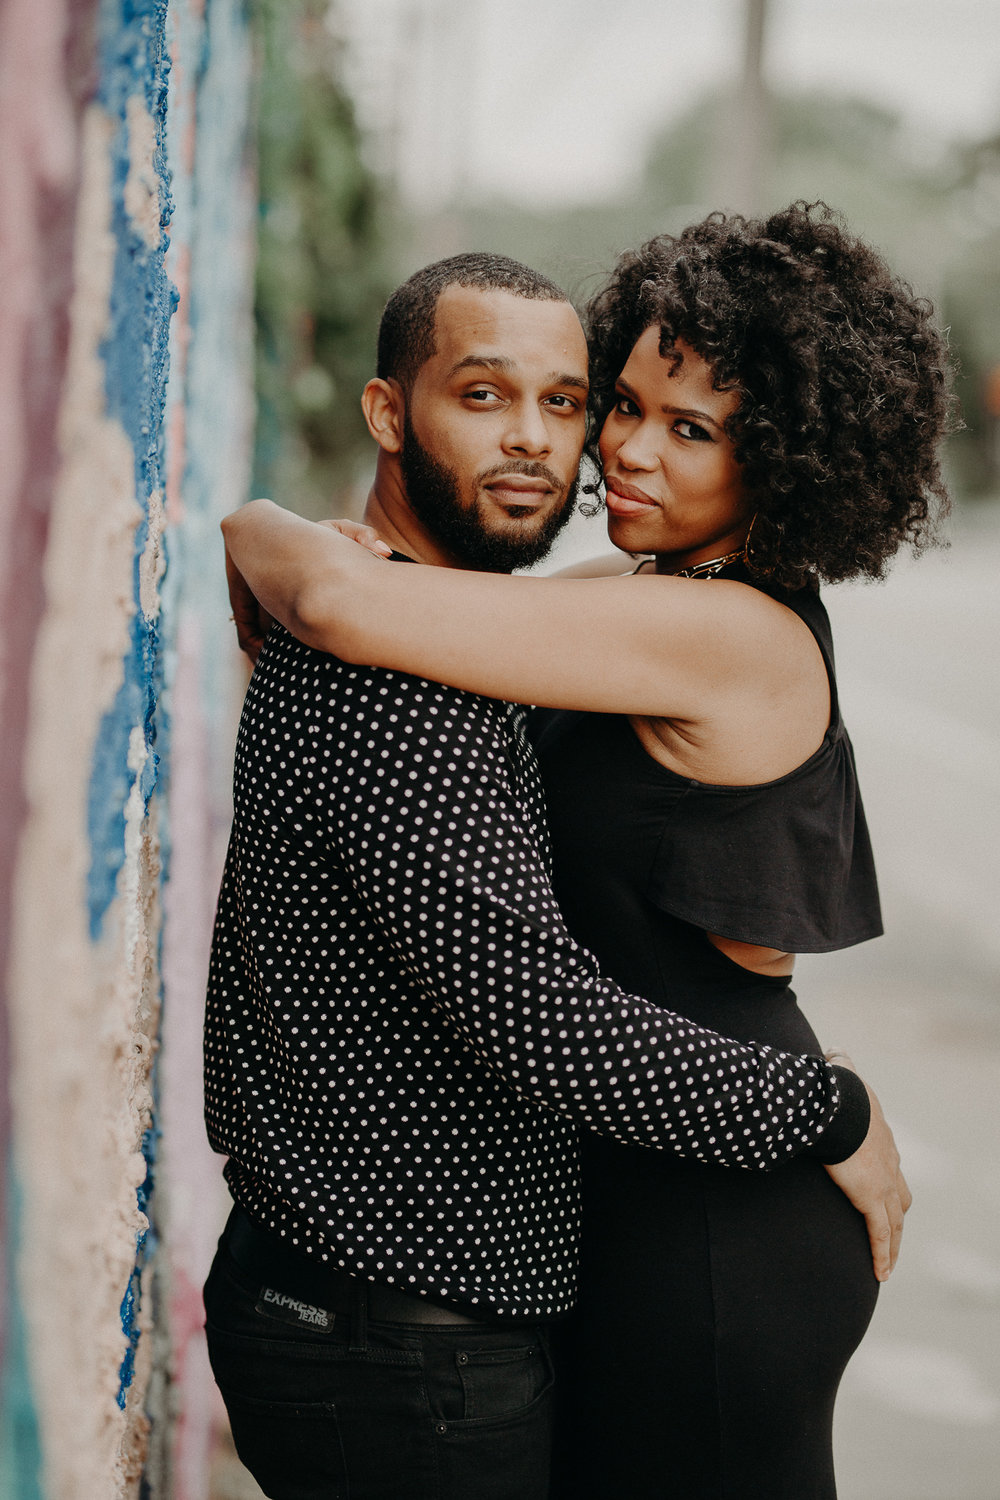 krog_street_atlanta_walls_engagement_ava+colin-5.JPG